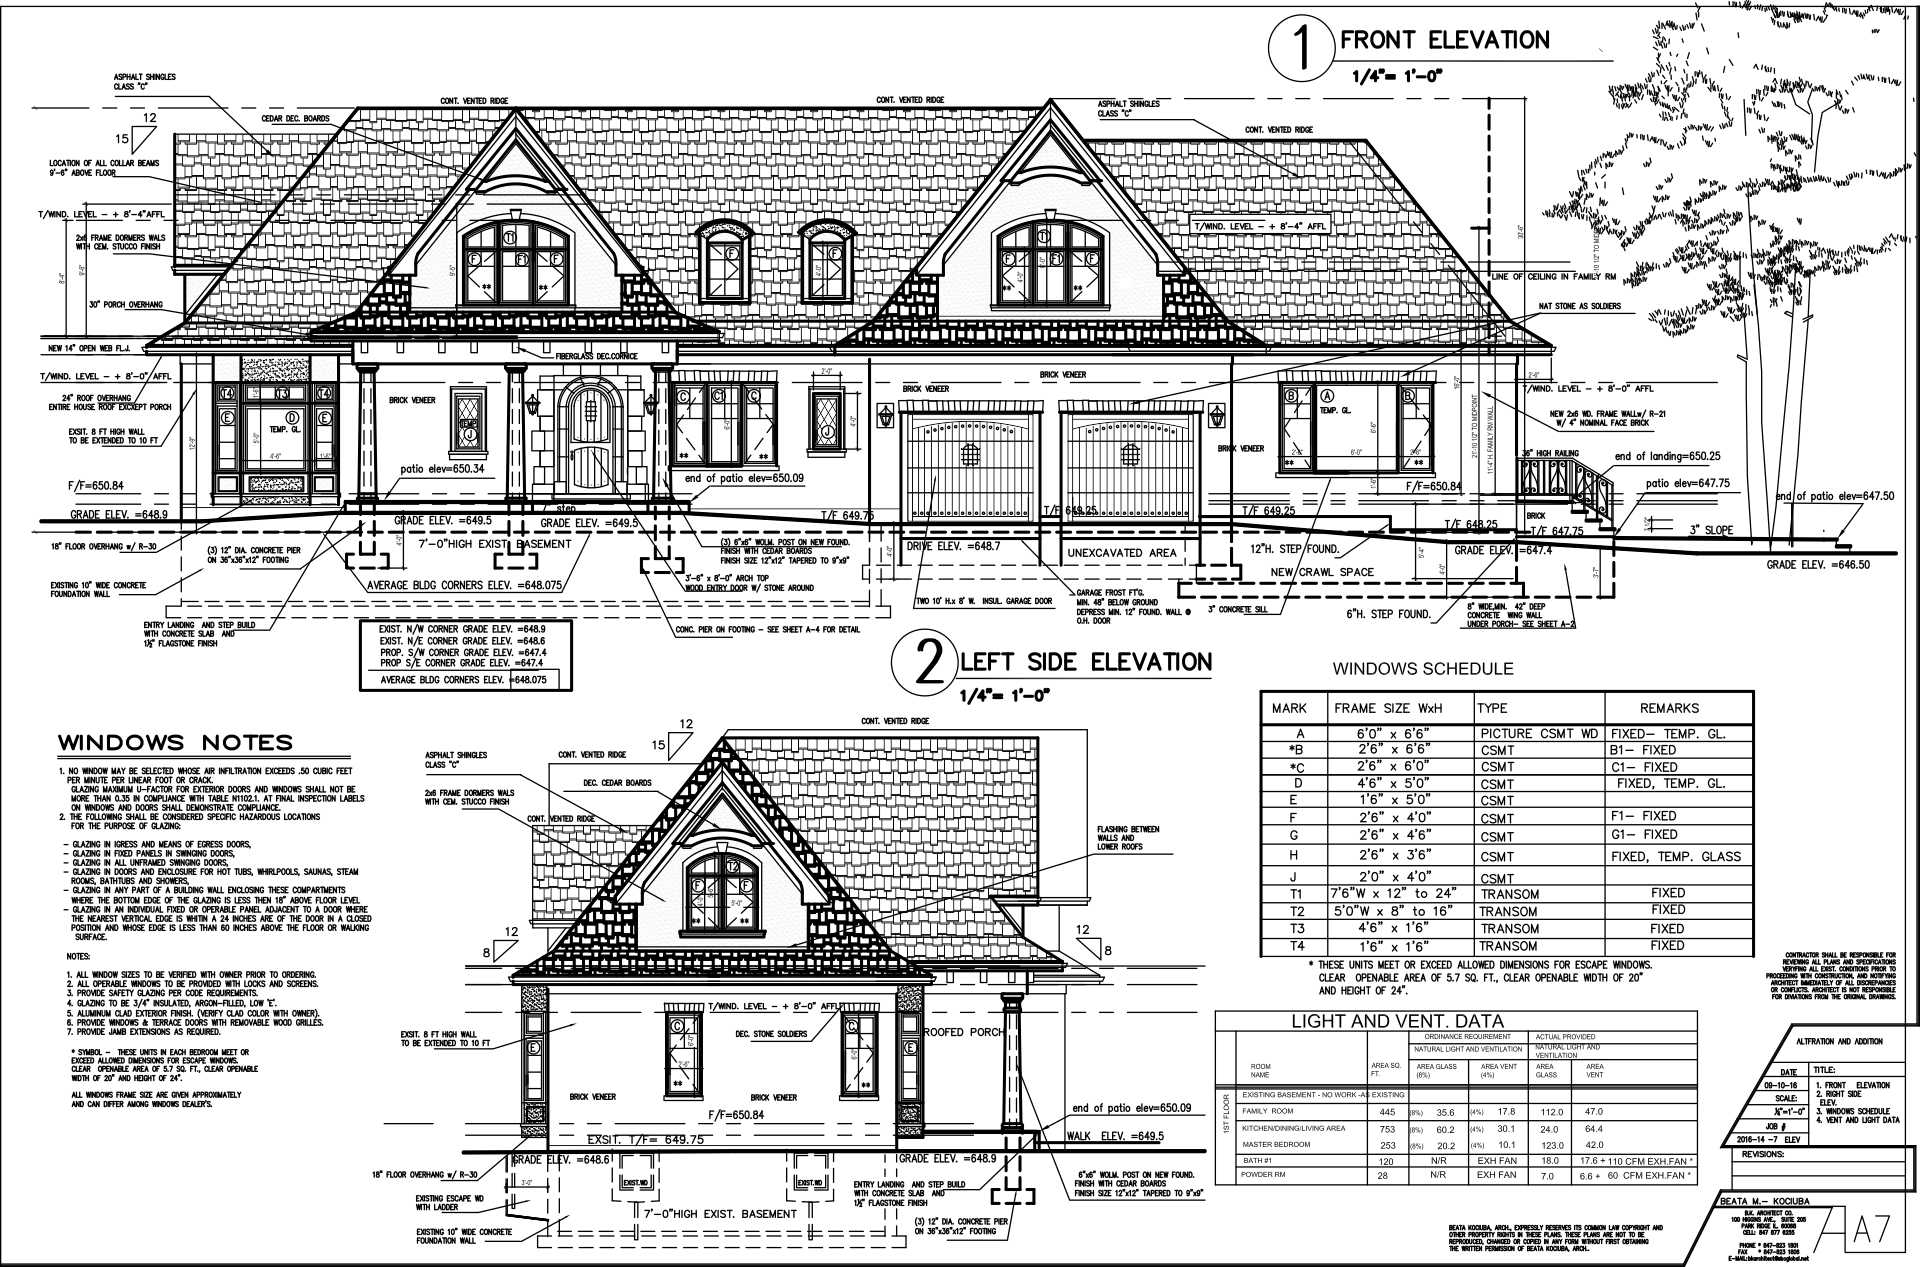 house-addition-glenview-by-greenleaf-developers-front-and-left-elevation